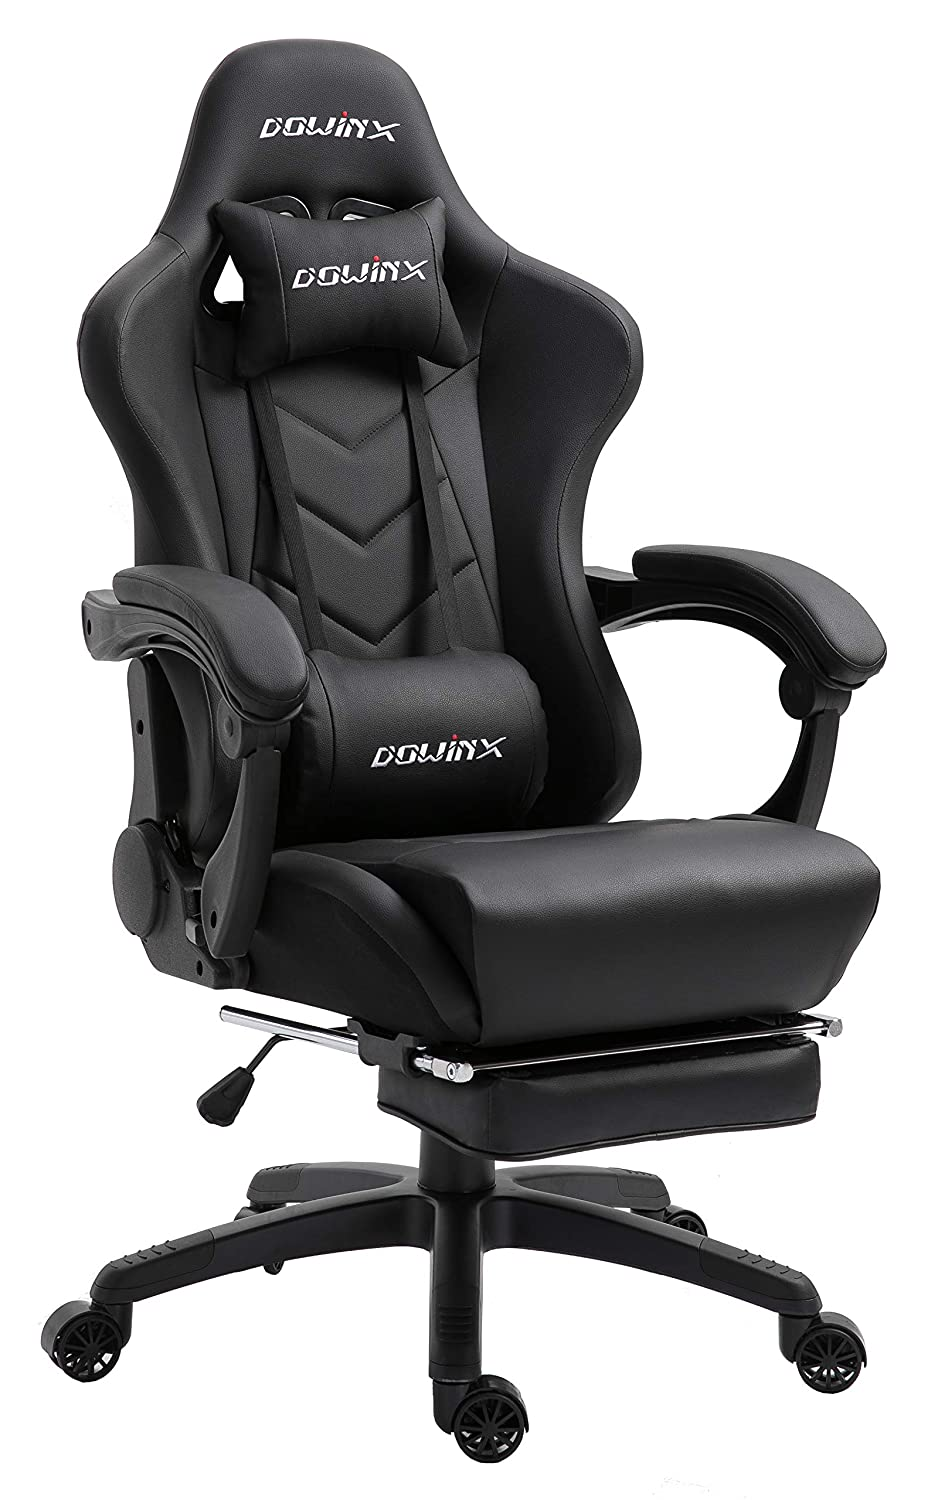 Dowinx Gaming Chair Ergonomic Office Recliner for Computer with Massage Lumbar Support, Racing Style Armchair PU Leather E-Sports Gamer Chairs with Retractable Footrest (Black)